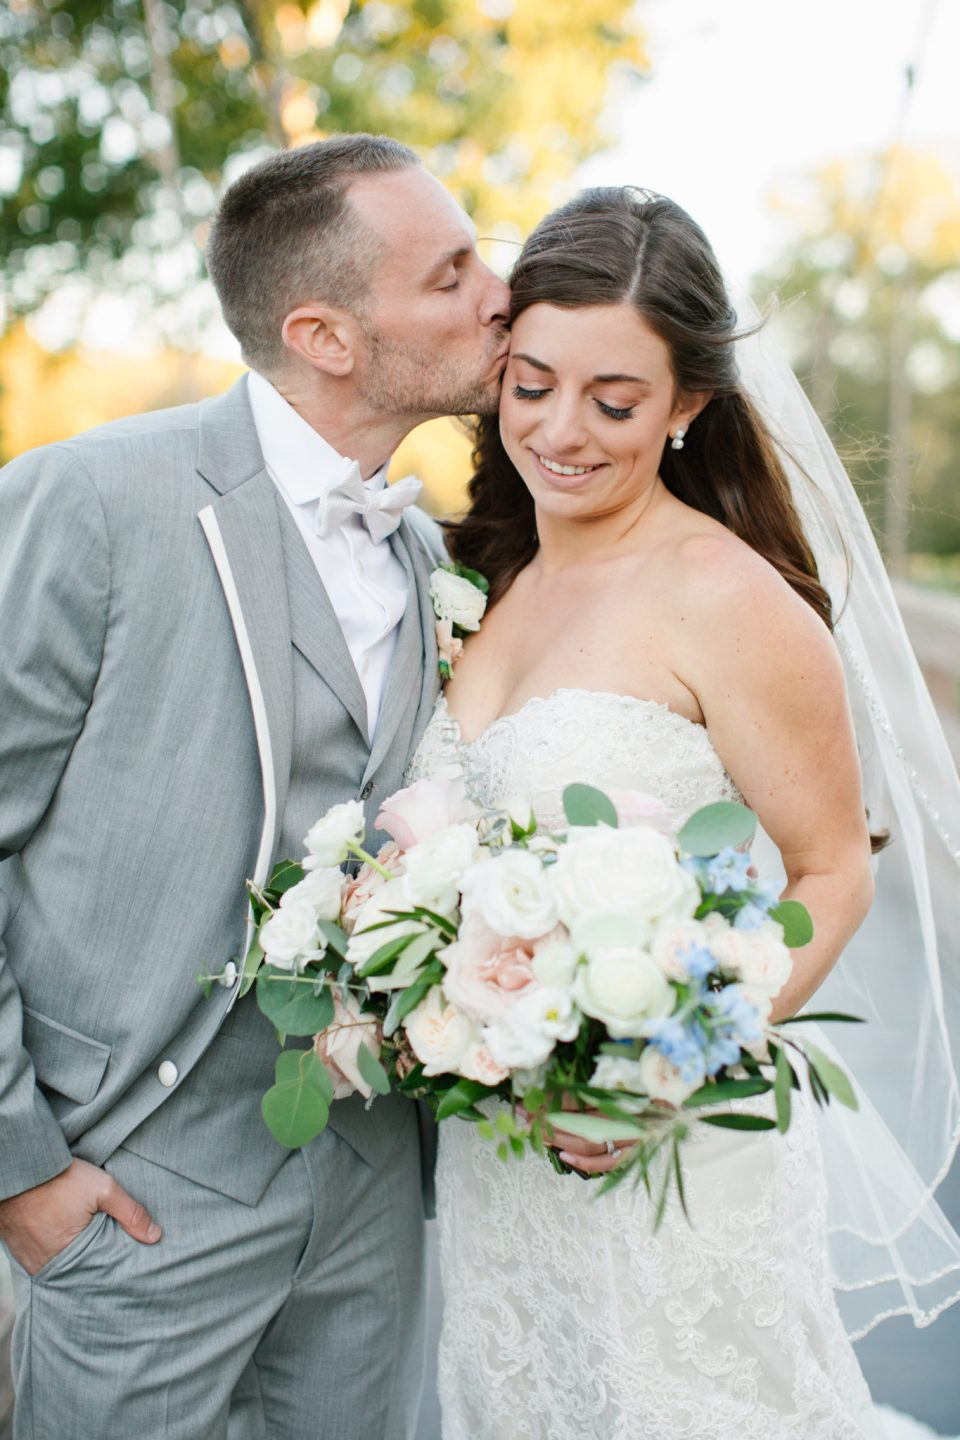 Ashley Mac Photographs photographs happy couple on wedding day in New Jersey